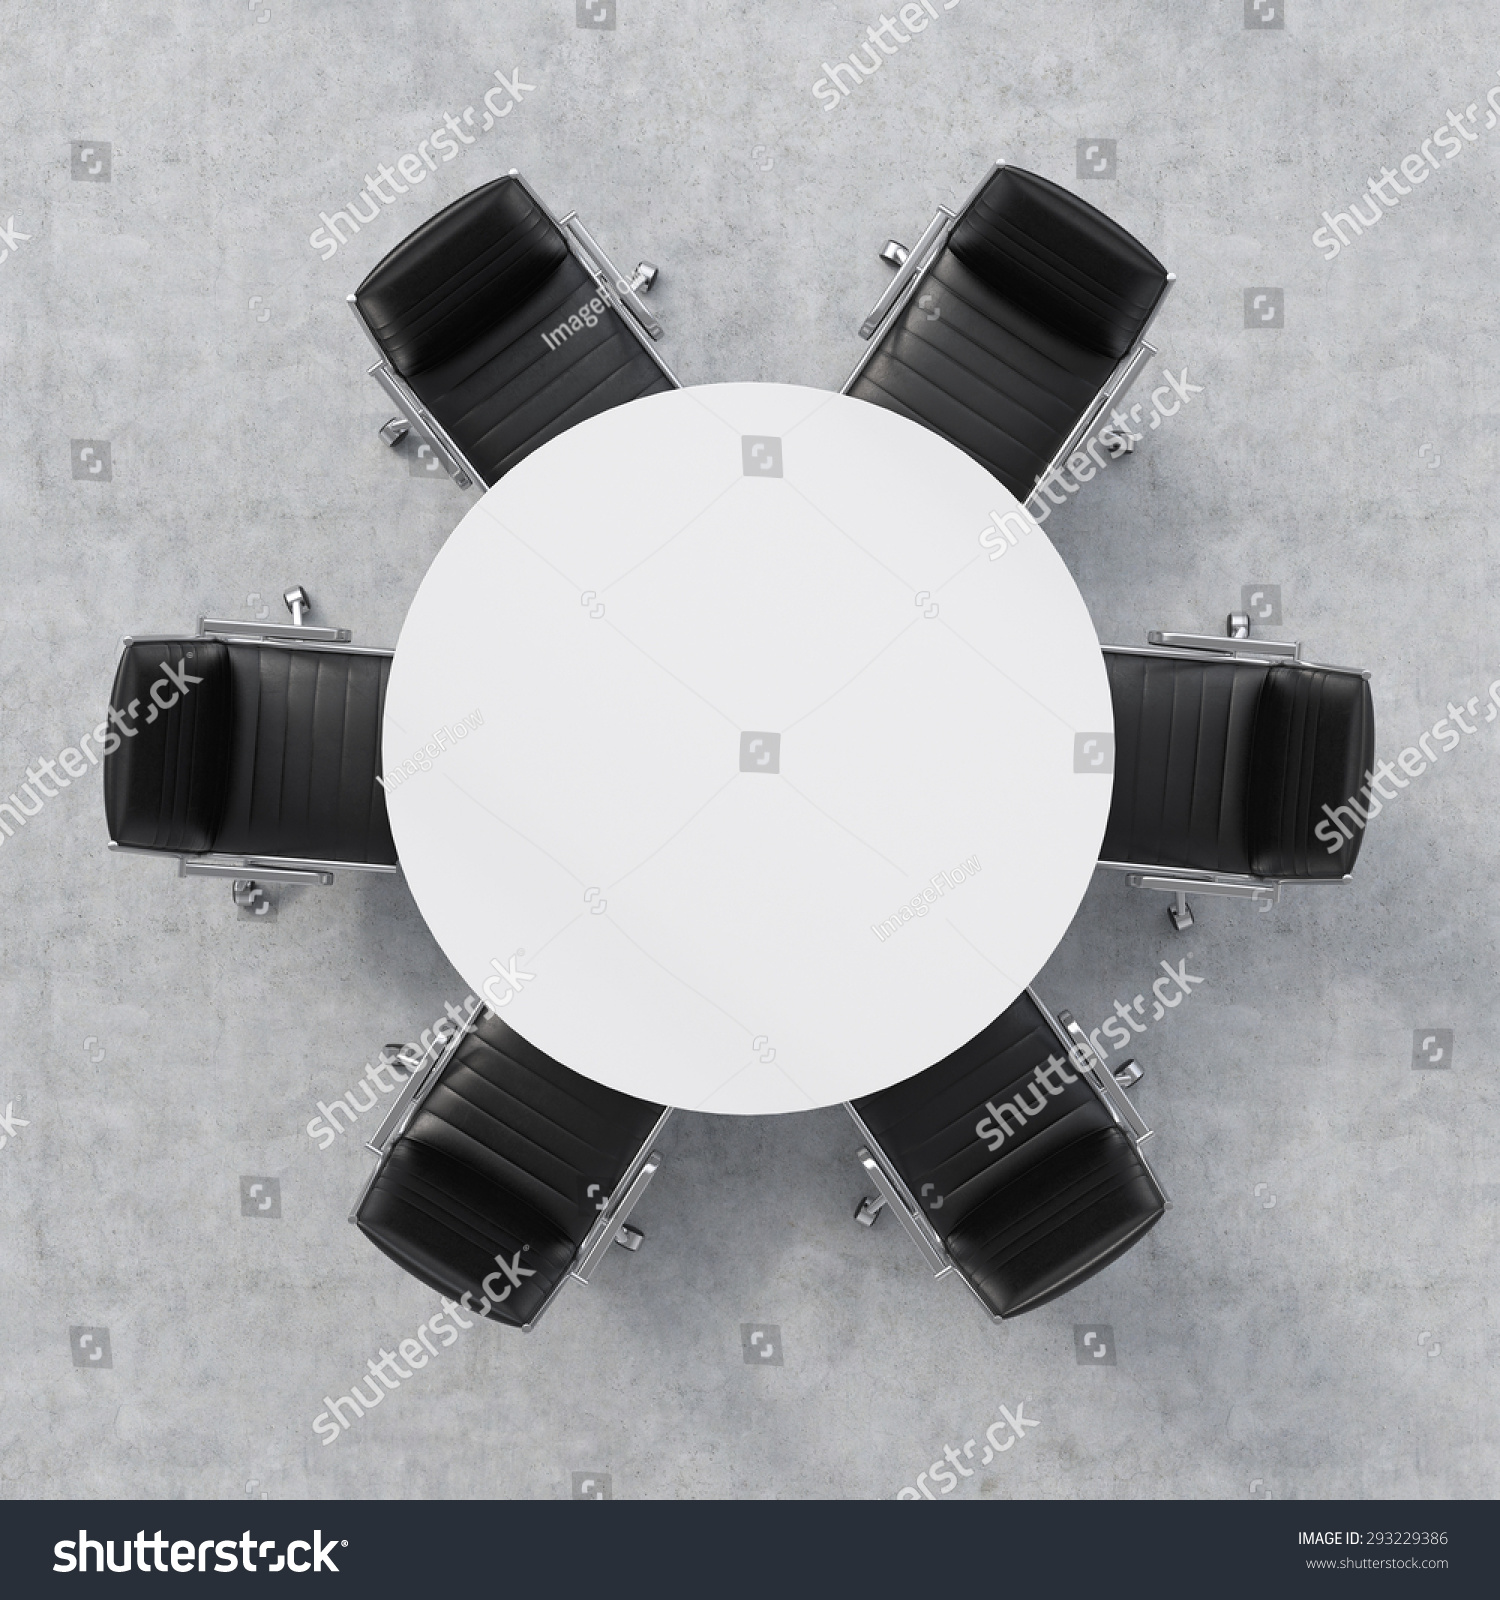 Top View Of A 3d Rendering Conference Room A White Round Table And